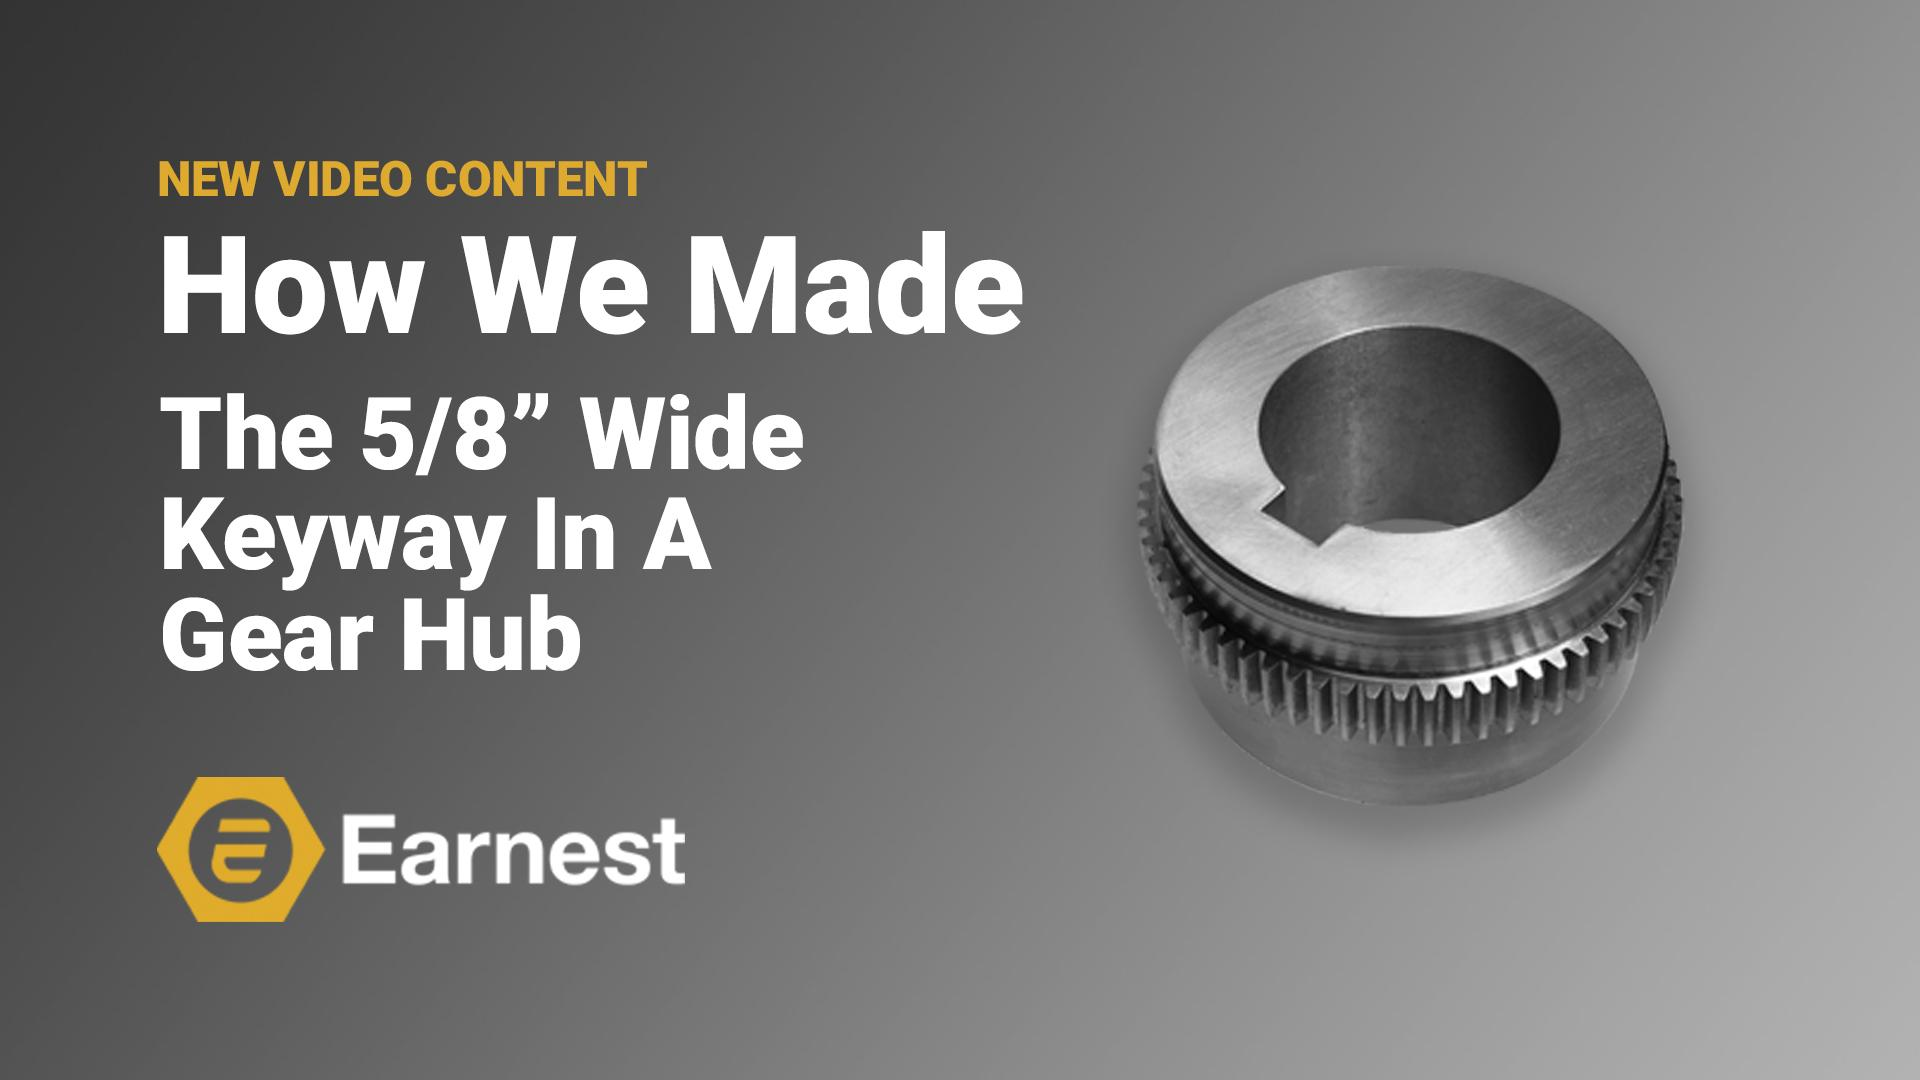 "How Earnest Machine Made: The 5/8"" Wide Keyway In A Gear Hub"